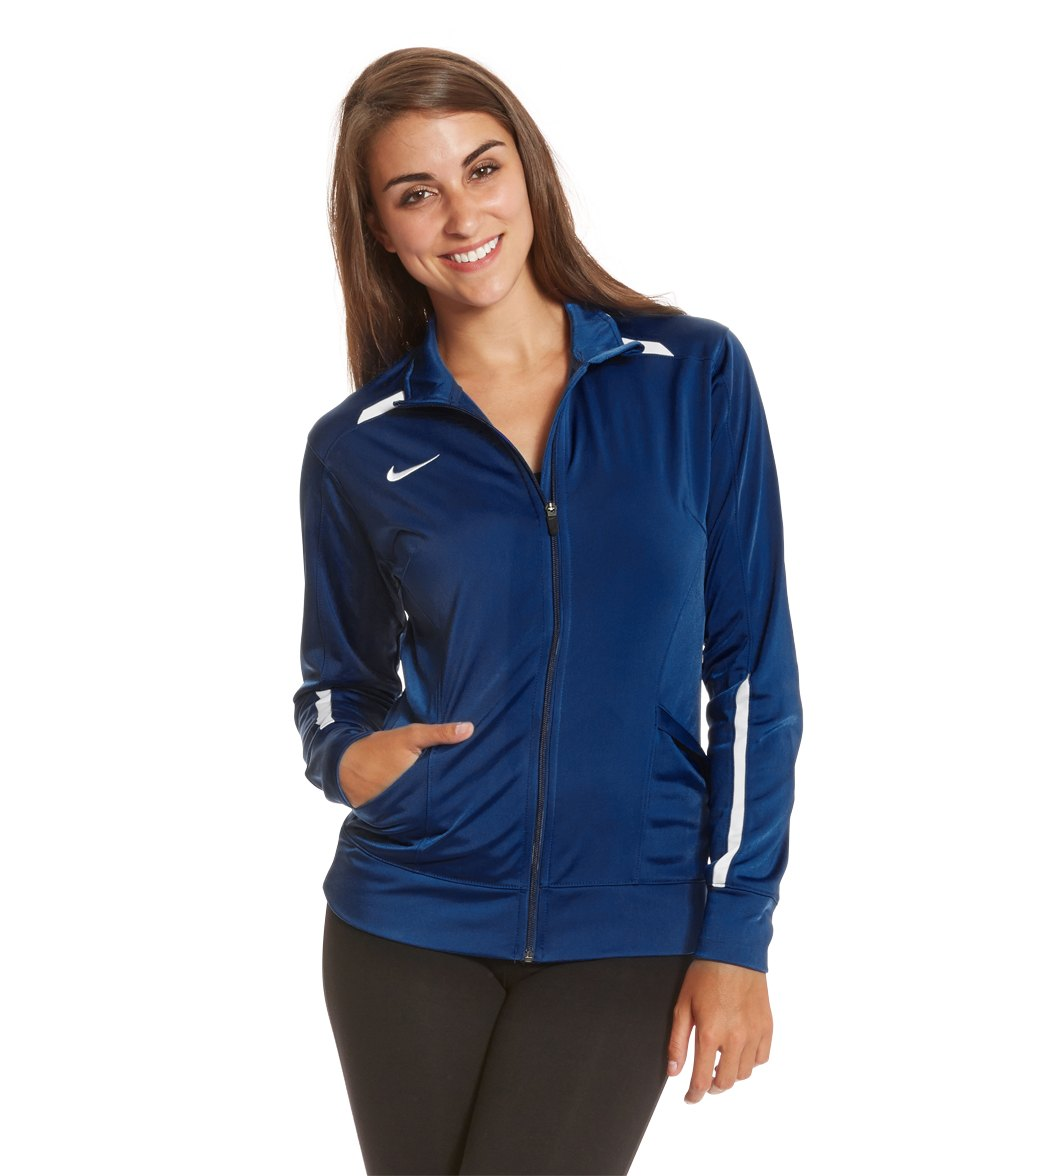 e87a0f9cc7ed Nike Swim Women s Overtime Warm-Up Jacket at SwimOutlet.com ...